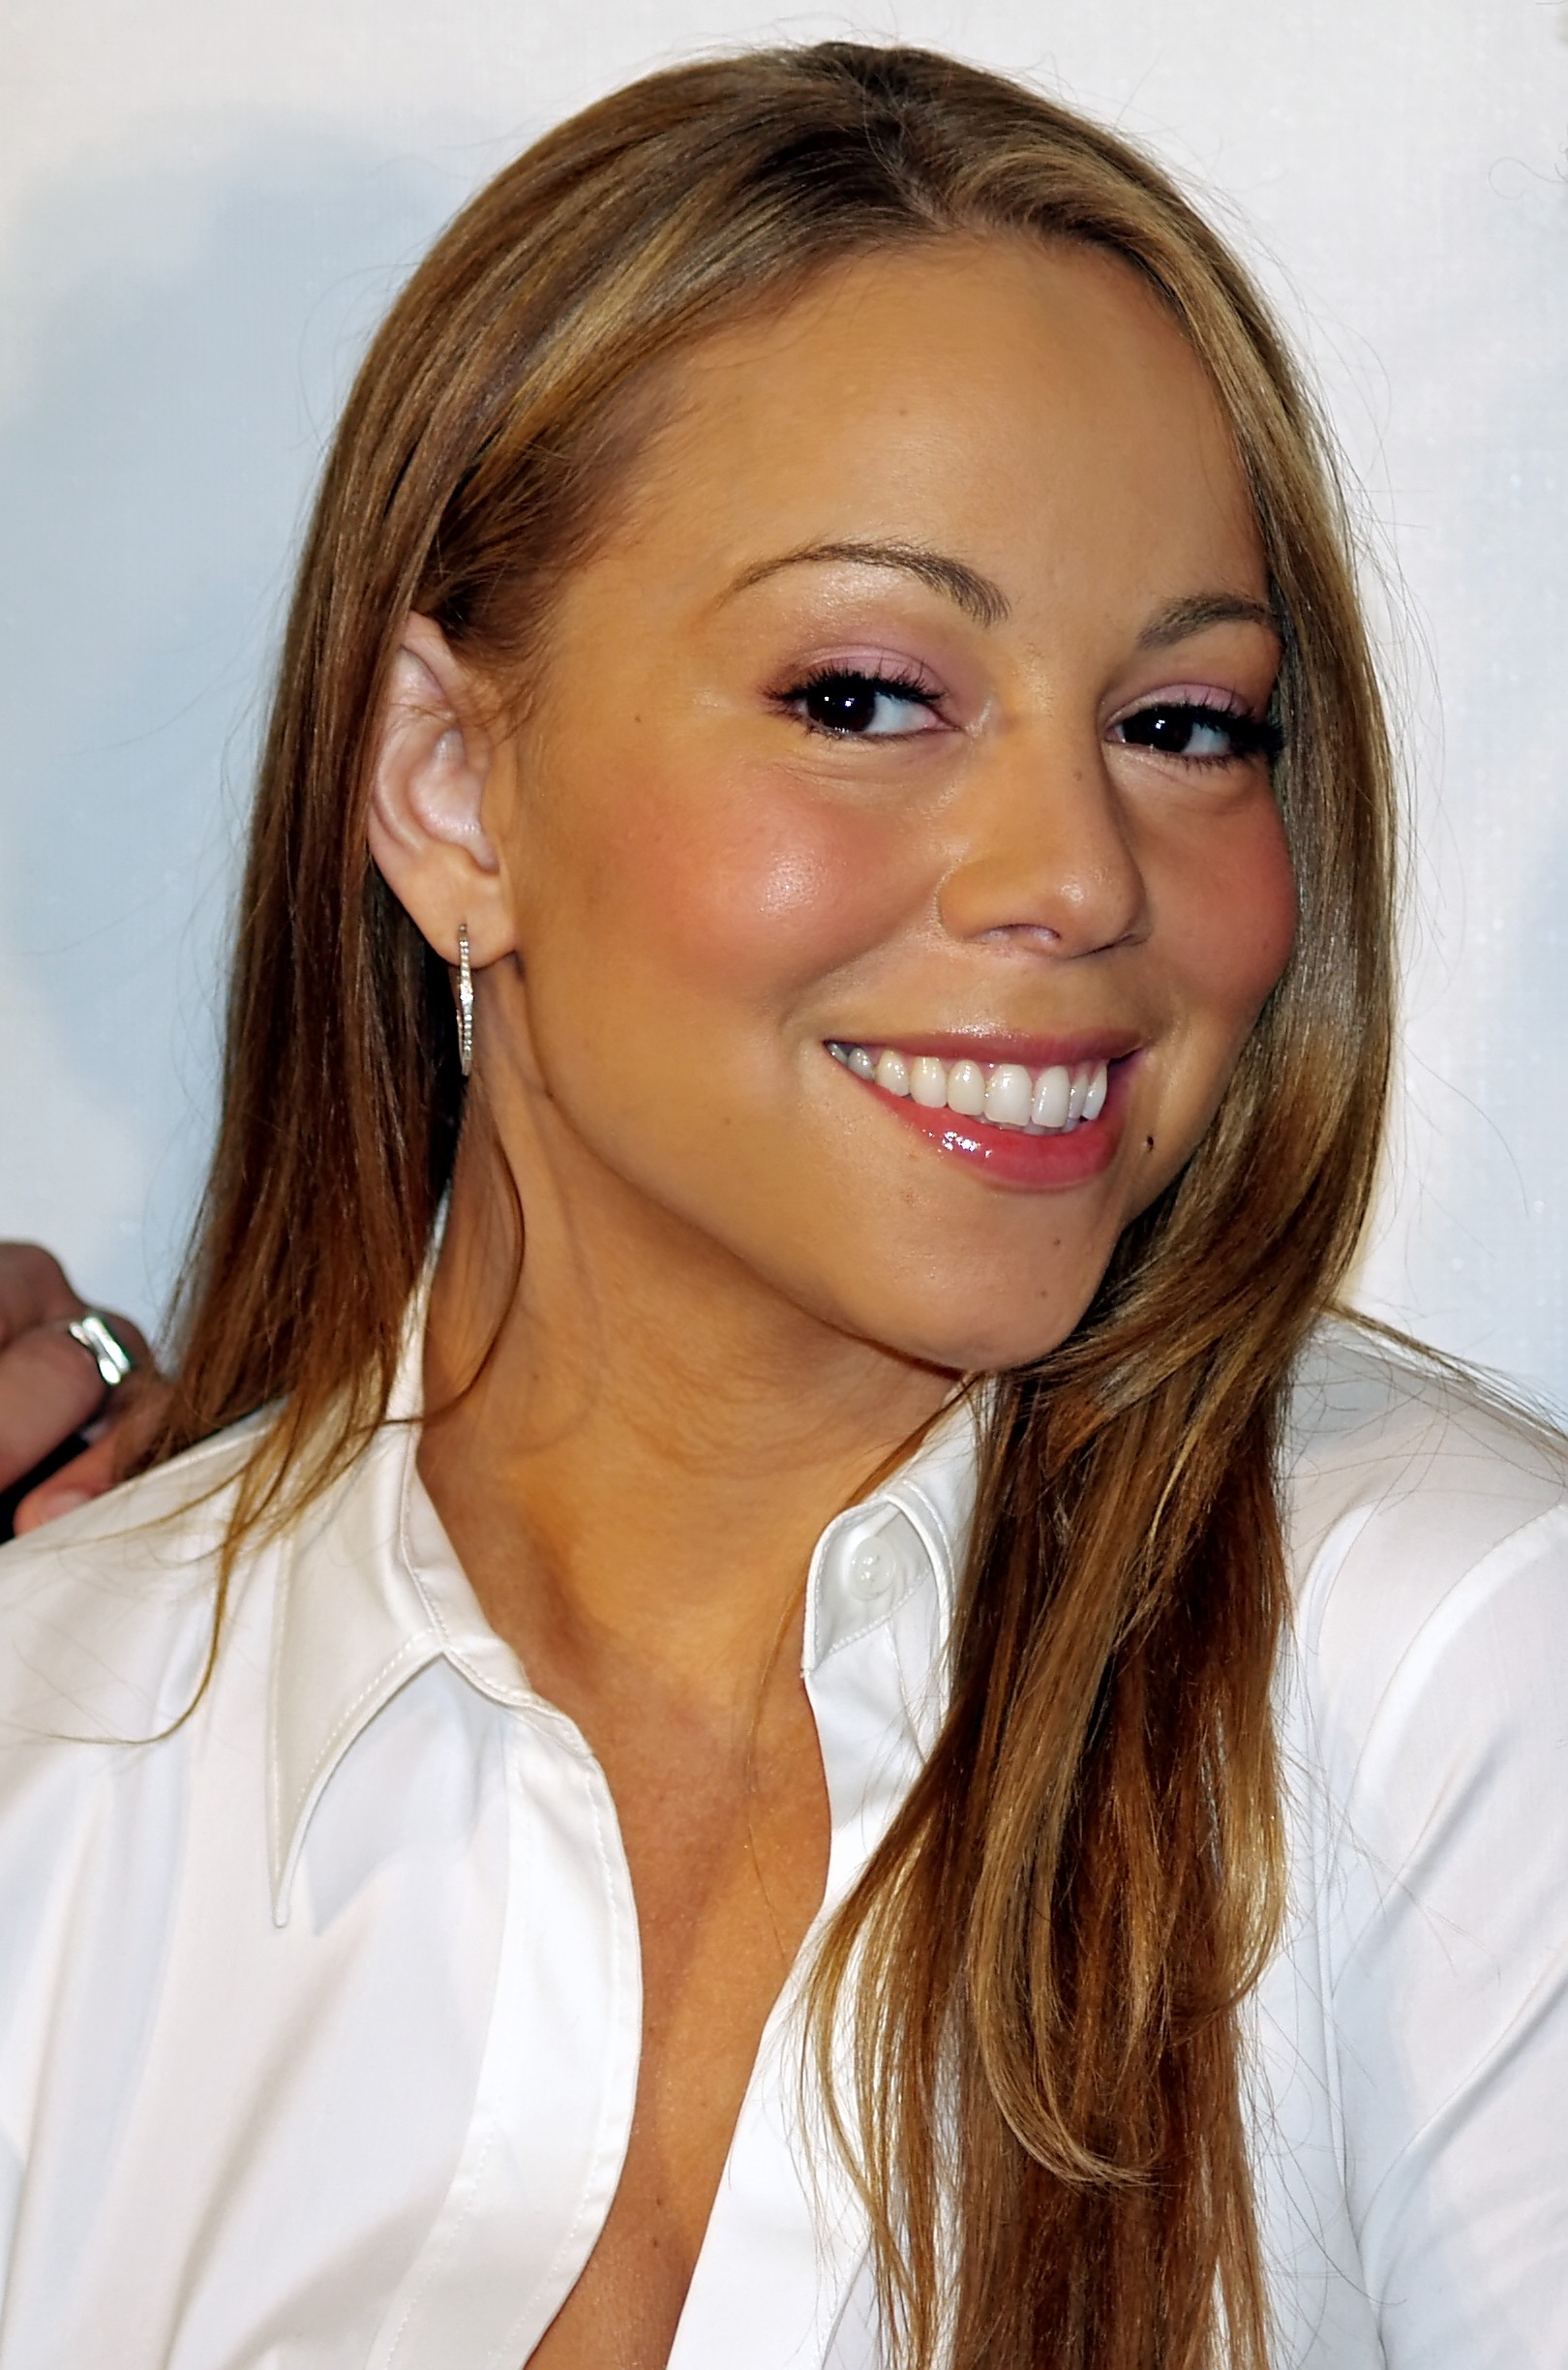 Description Mariah Carey by David Shankbone.jpg